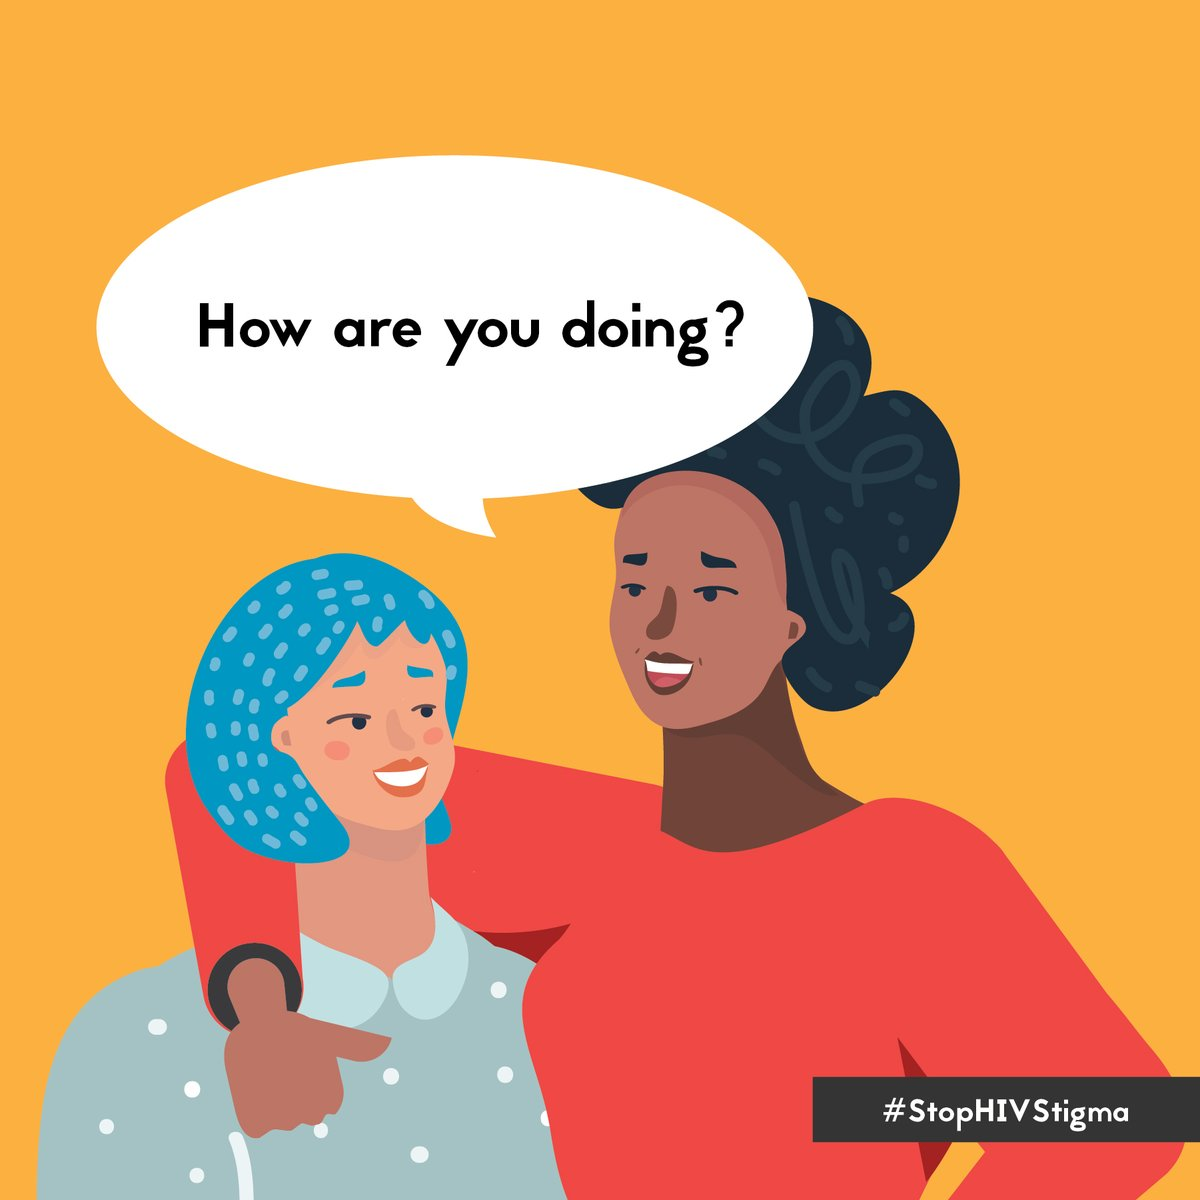 #DYK that you can help end harmful stress for people with #HIV simply by being supportive, and letting people living with HIV know they are not alone? To learn more, visit:  #StopHIVStigma #StopHIVTogether